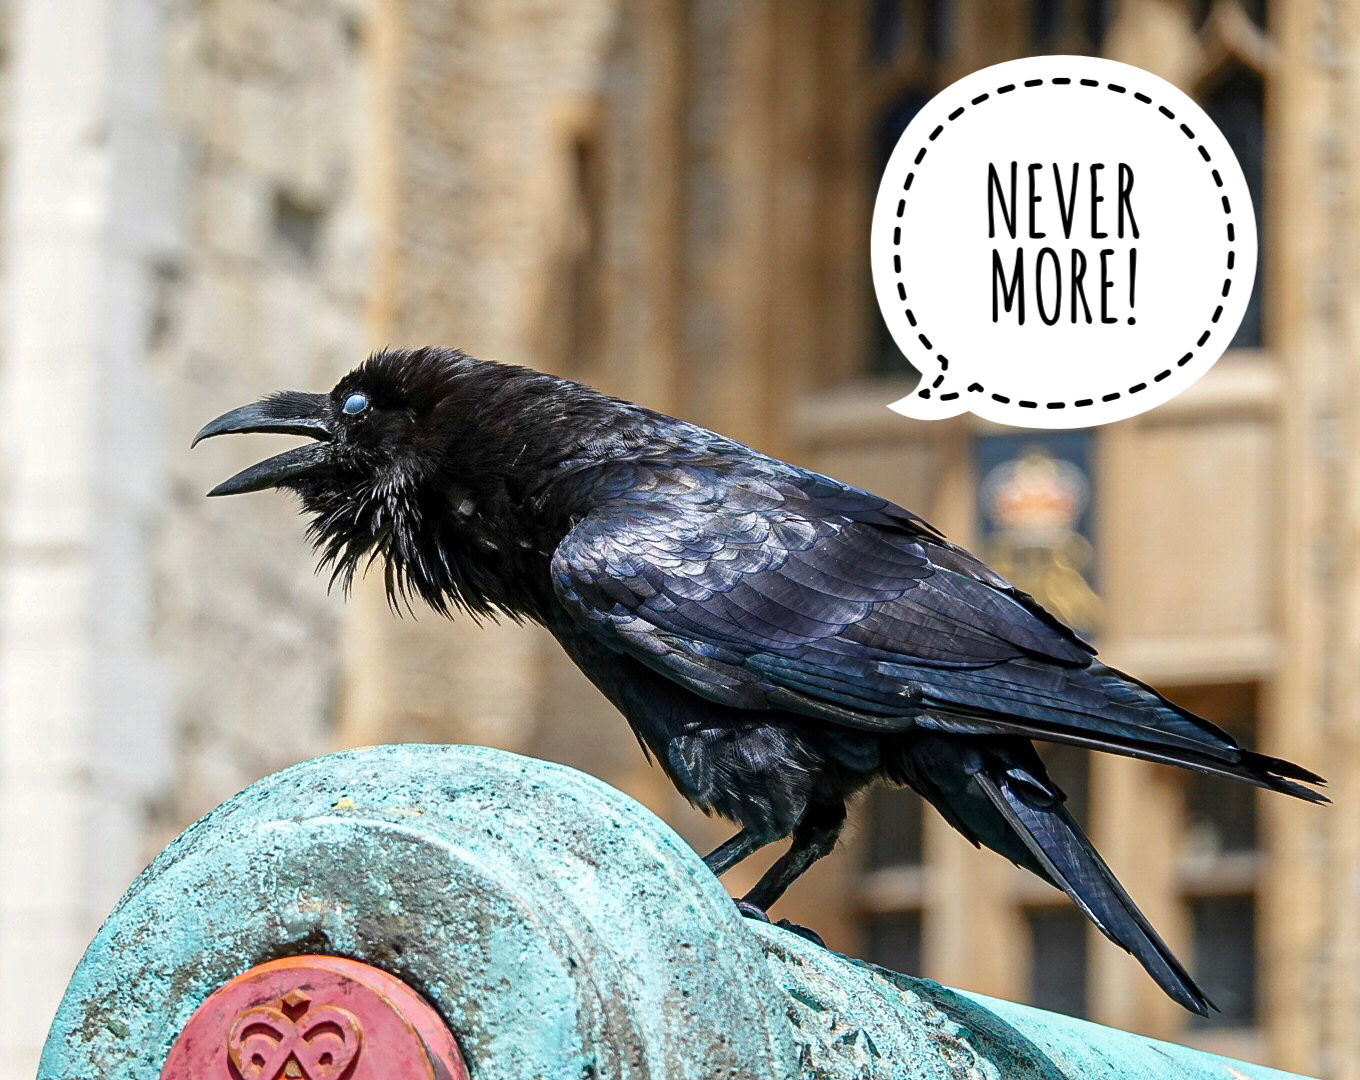 One of the famous Tower Ravens that roam the grounds by the dozen. Their wings are clipped.